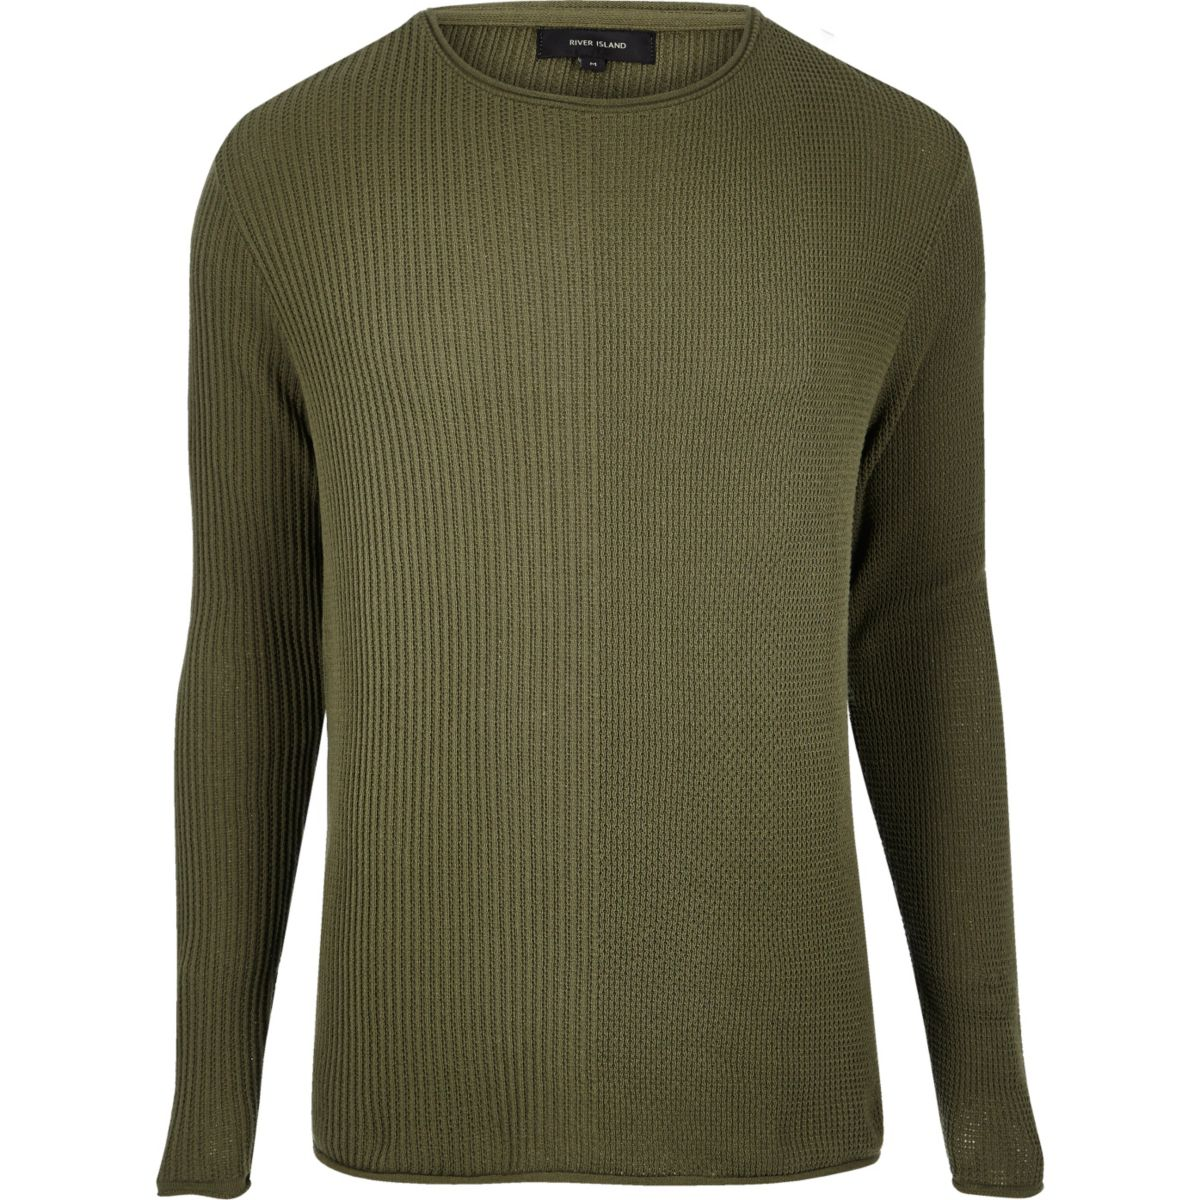 Khaki stitch block jumper